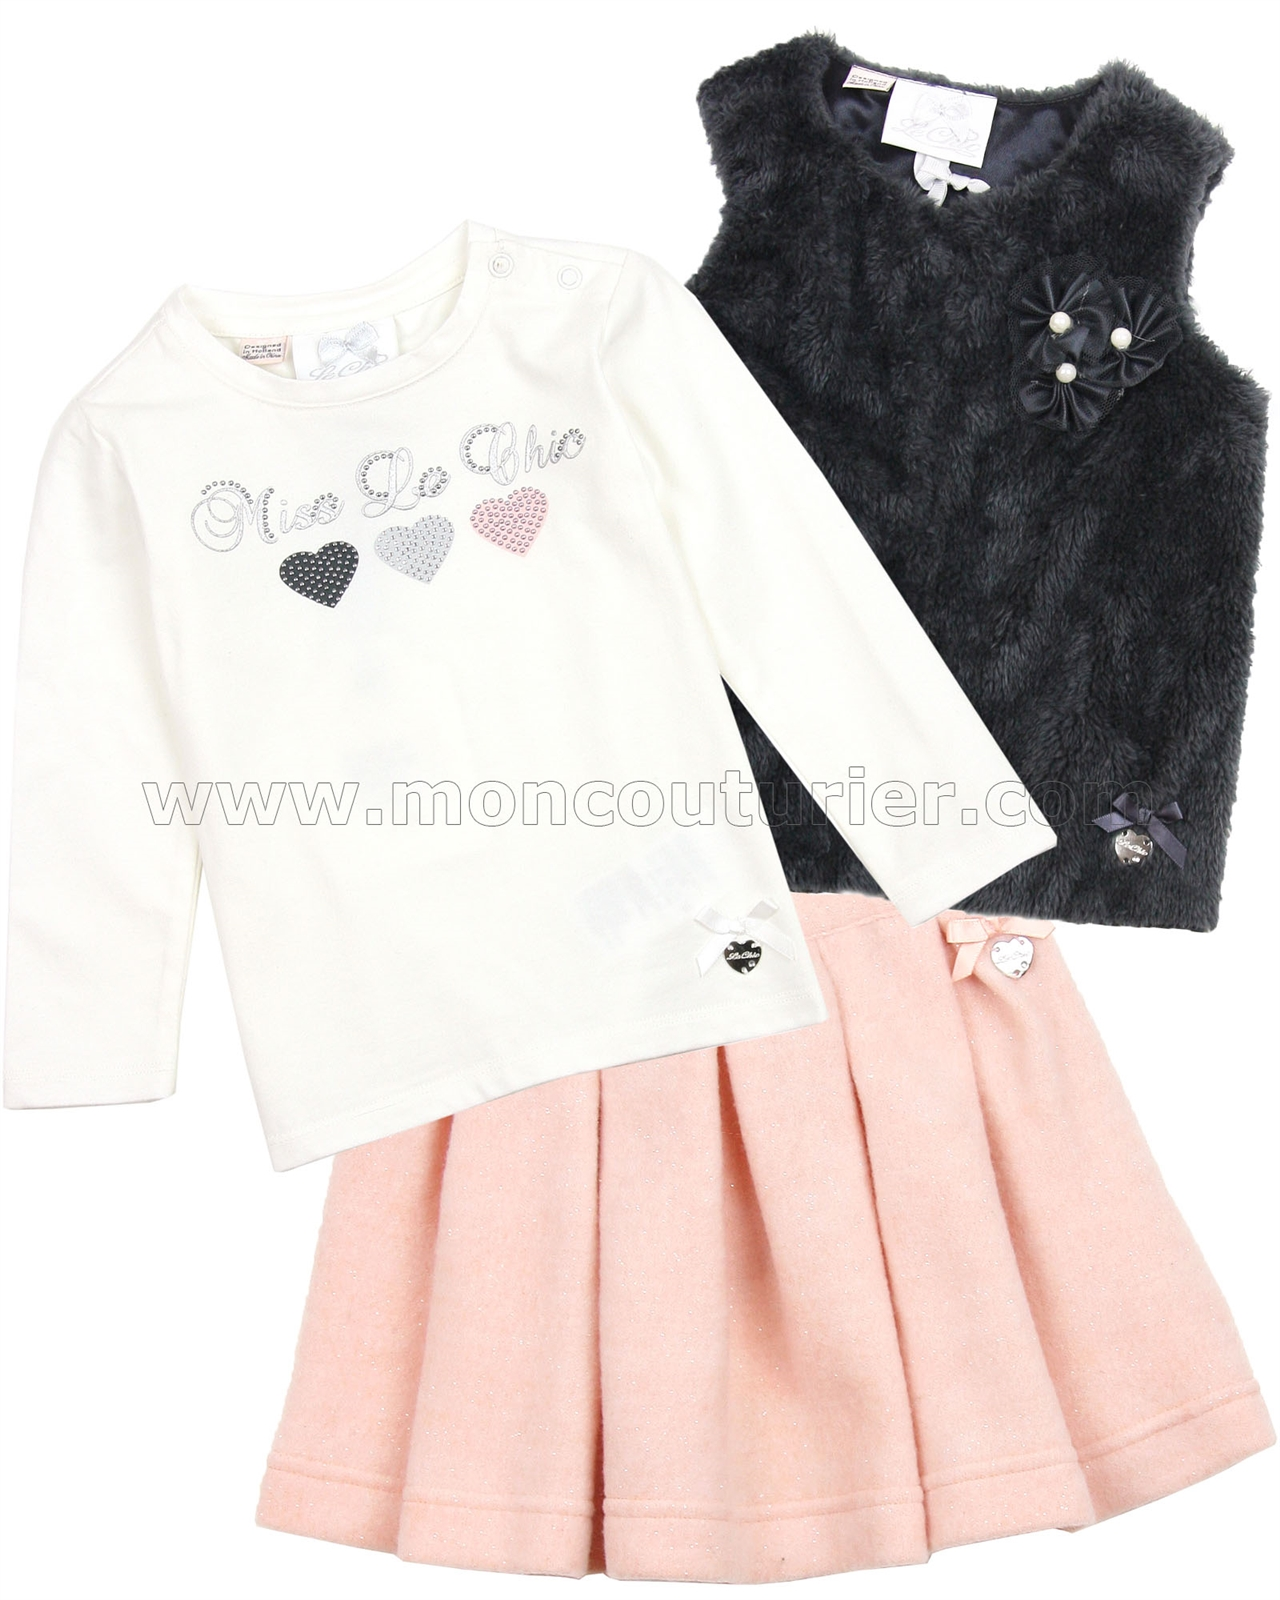 Le Chic Baby Girl Sherpa Vest T shirt and Skirt Set Le Chic Le